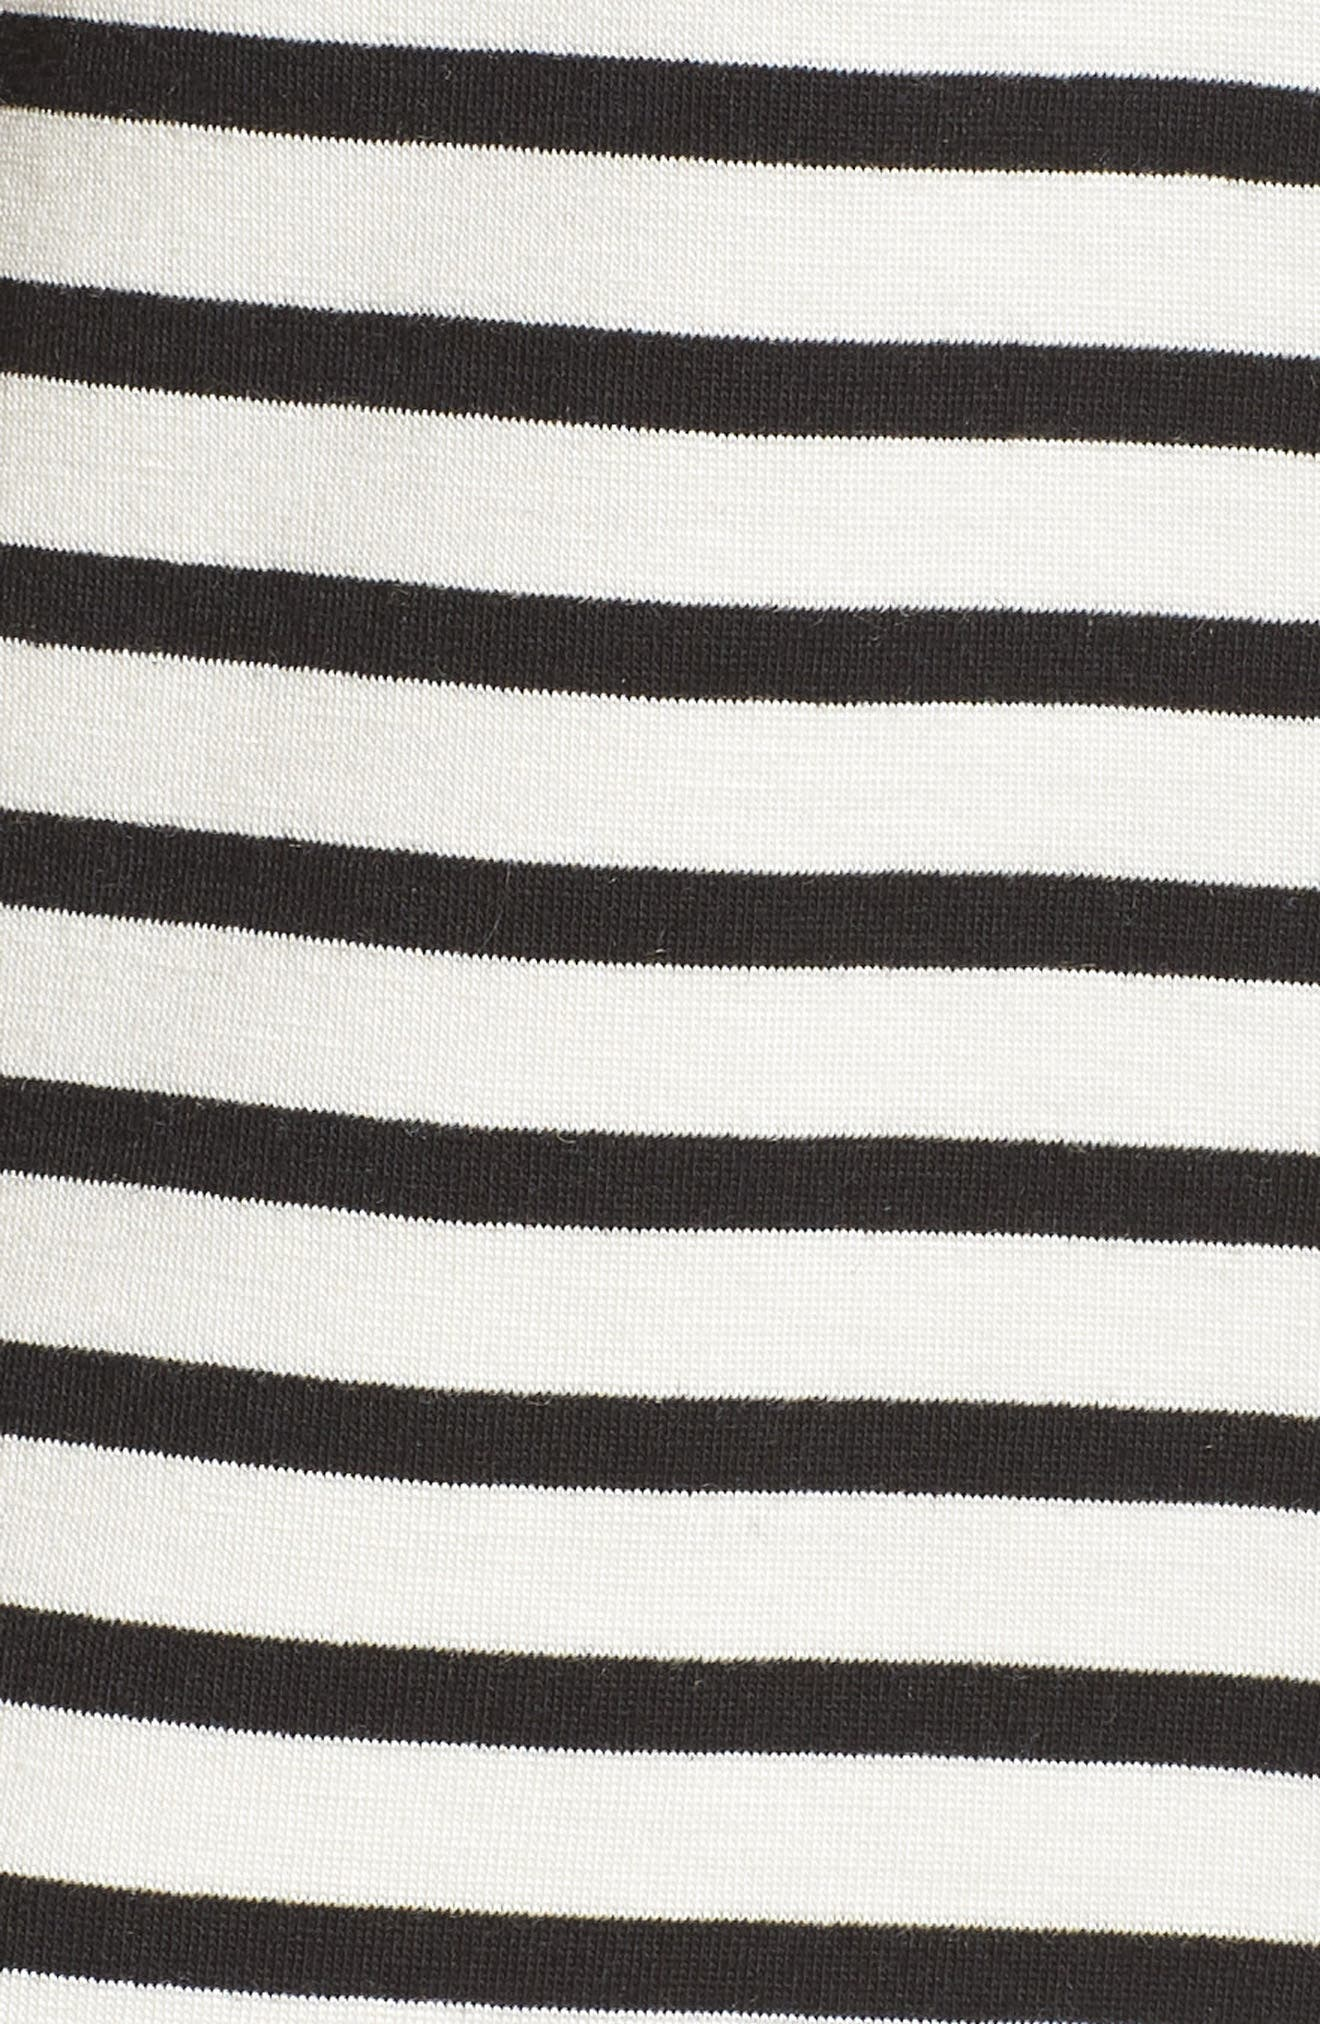 Monaco Short Pajamas,                             Alternate thumbnail 5, color,                             PEARL STRIPE